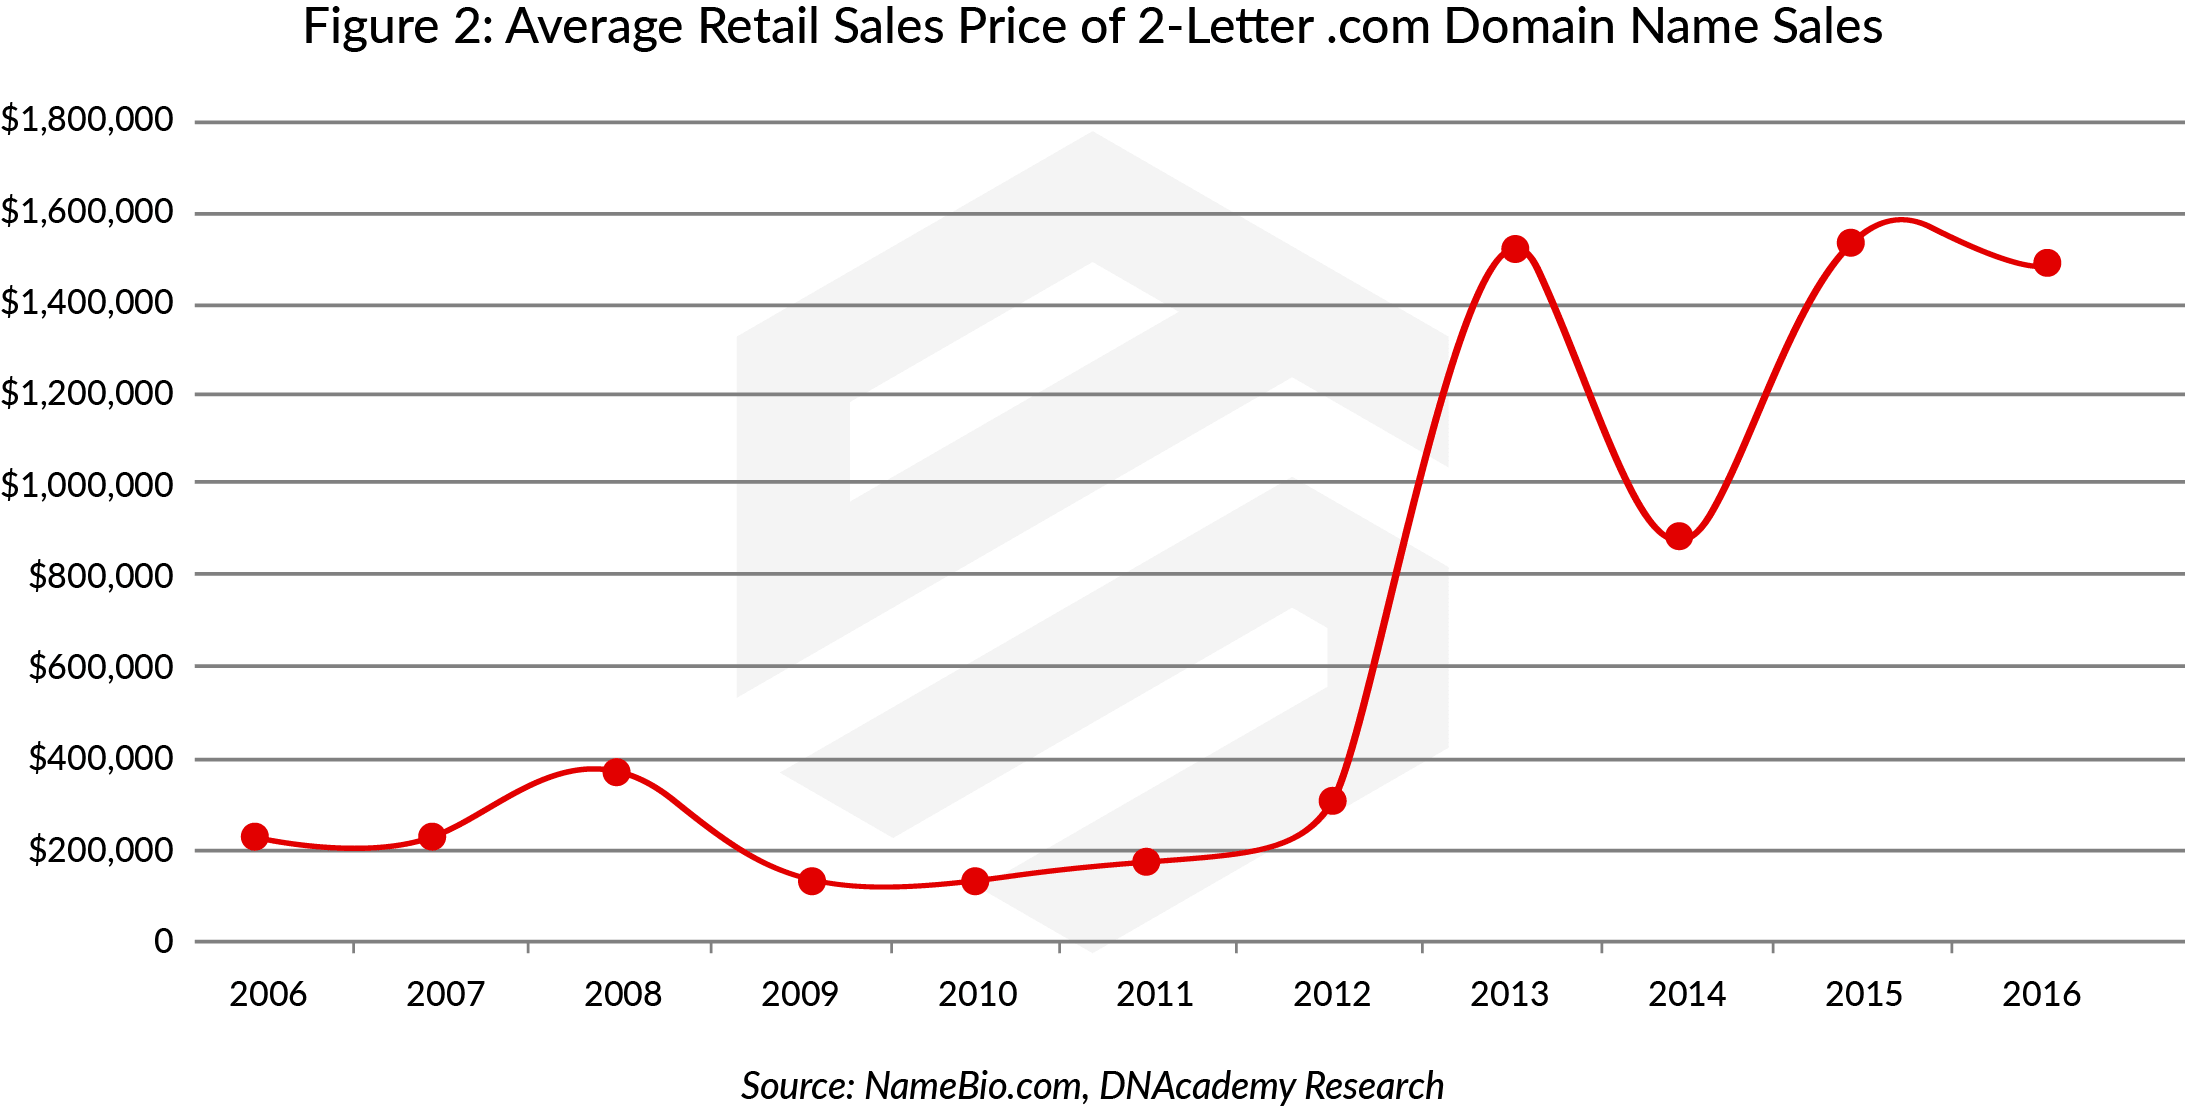 How Much is a Domain Name Worth: Average Retail Sales of 2-Letter .com Domain Name Sales